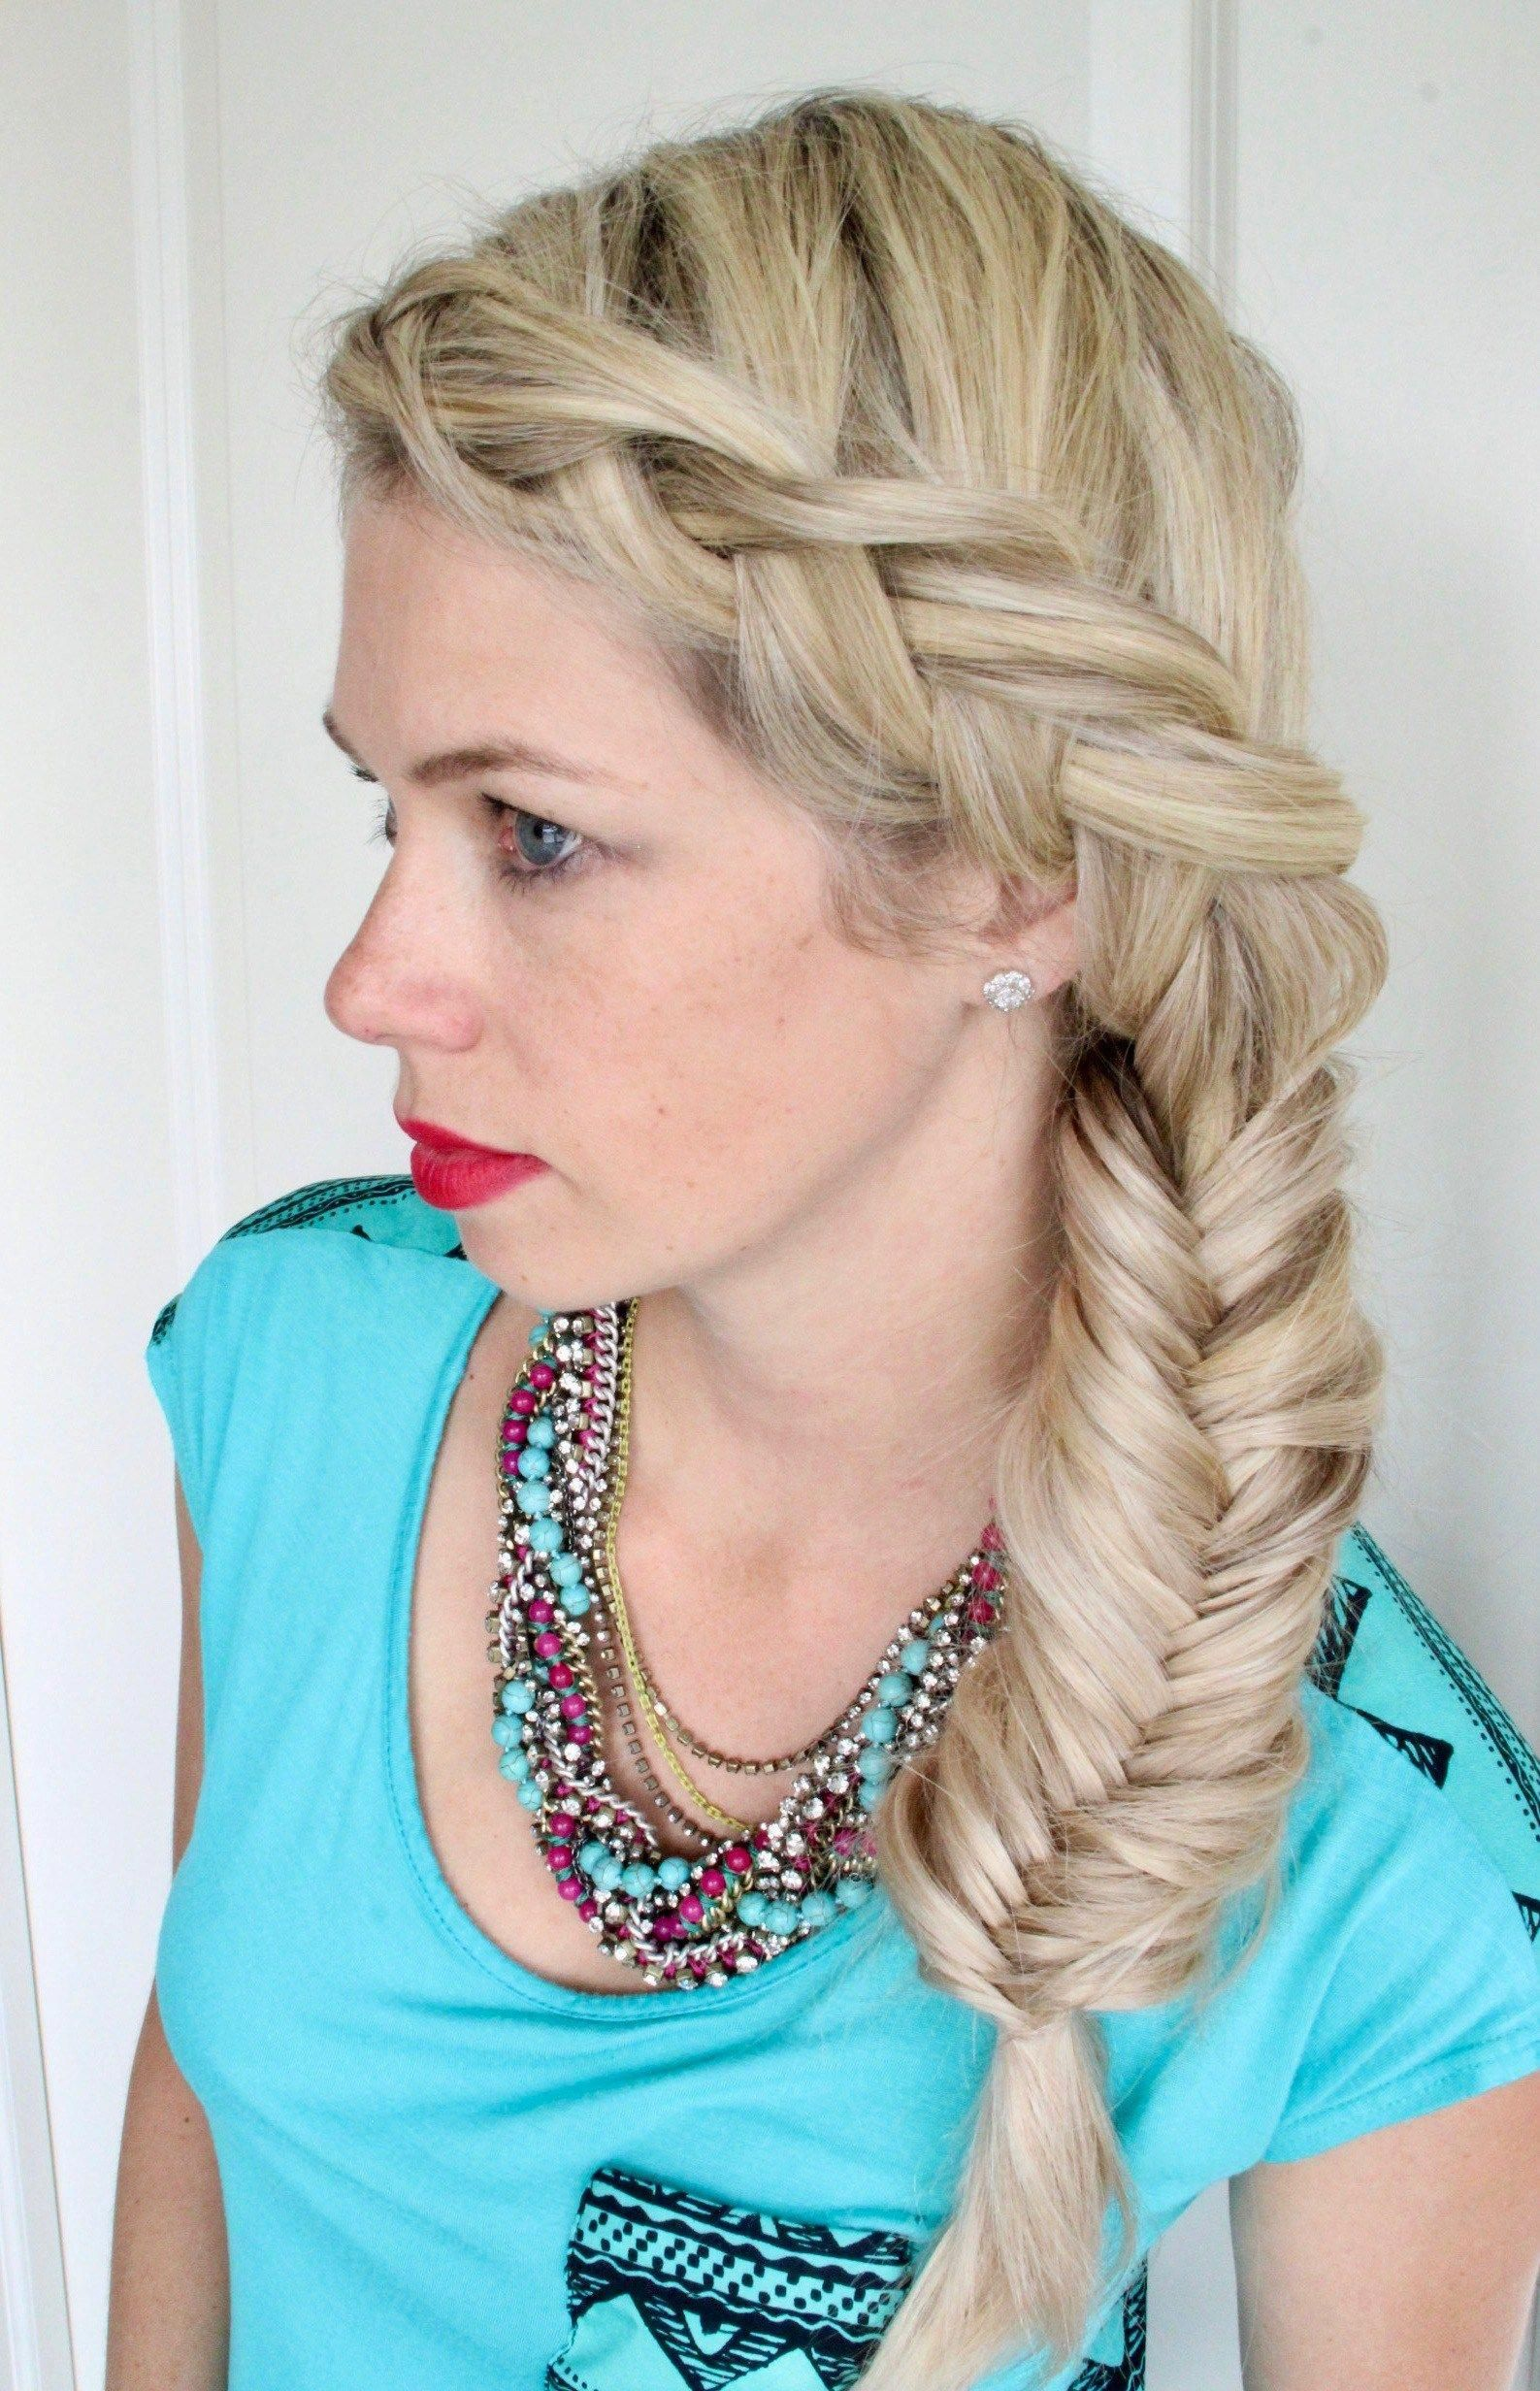 Double Fishtail Braid Messy Bun Tutorial Double Fishtail Braid Messy Bun Tutorial This Post May Contain Affiliate Links That Means We May Make A Small  Double Fishtail Braid Messy Bun Tutorial Double Fishtail Braid Messy Bun Tutorial This Post May Contain Affiliate Links That Means nbsp  hellip   #affiliate #braid #double #fishtail #links #means #messy #messybuntutorialwithscrunchie #small